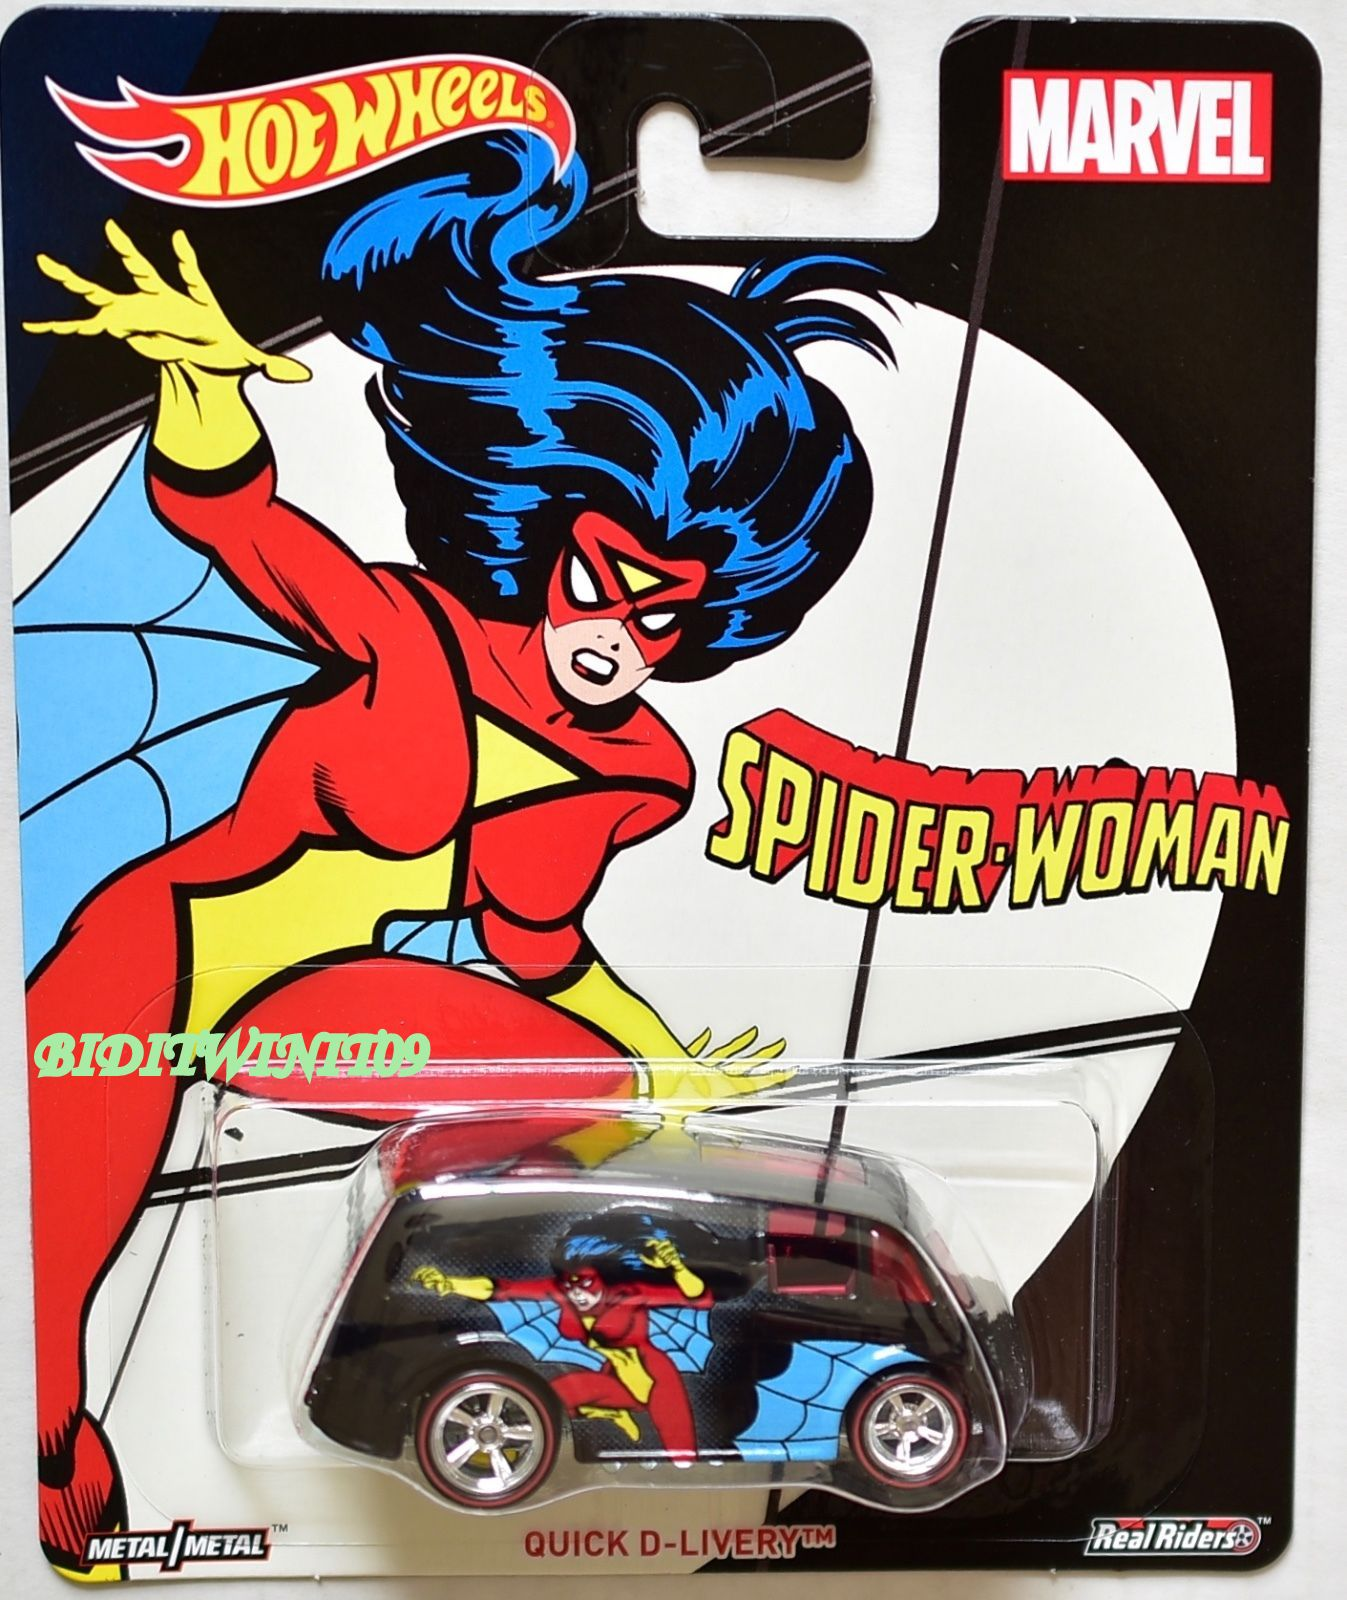 HOT WHEELS POP CULTURE 2017 MARVEL QUICK D-LIVERY SPIDER-WOMAN